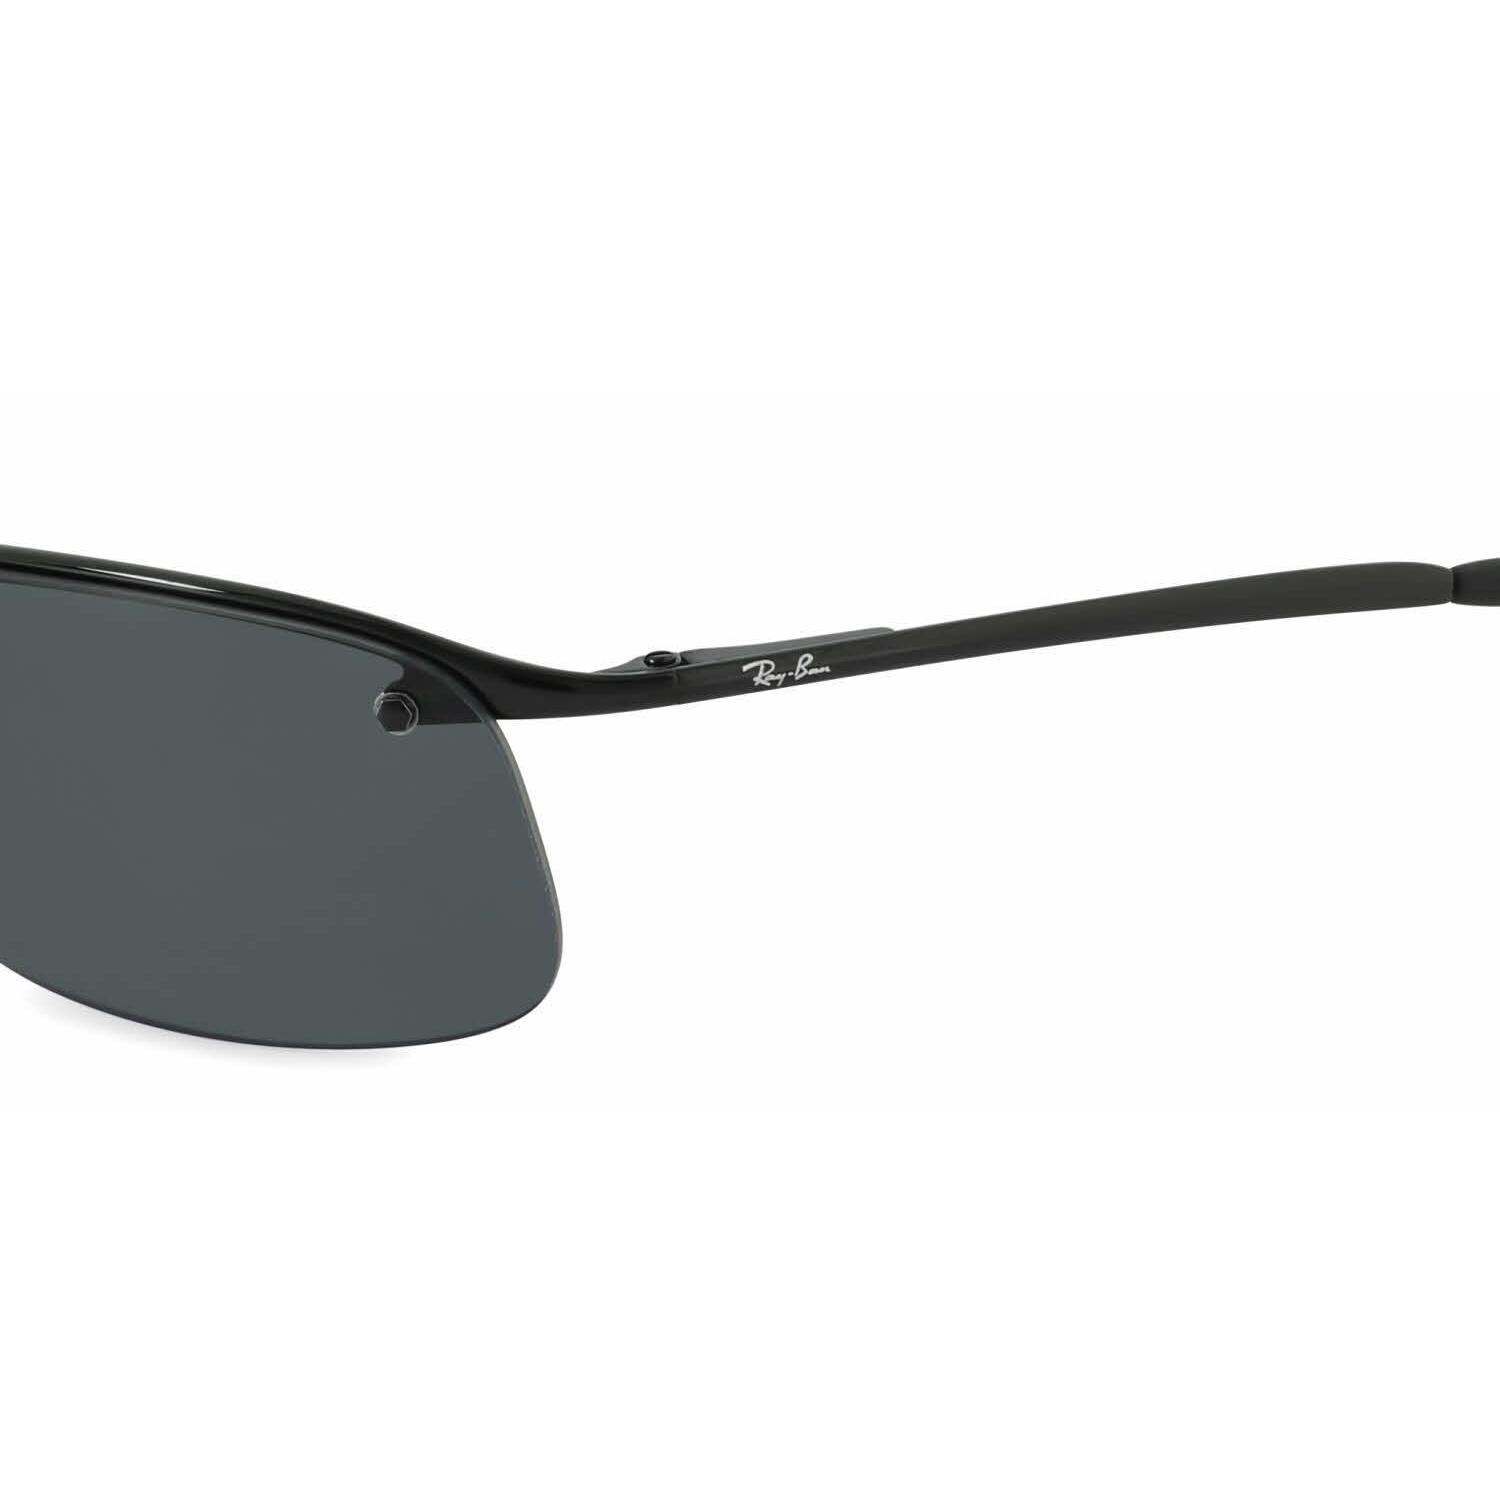 81c2d780cac00a Shop Ray Ban Mens RB3183 002 81 Black Metal Rectangle Sunglasses - Grey -  Free Shipping Today - Overstock - 13471710